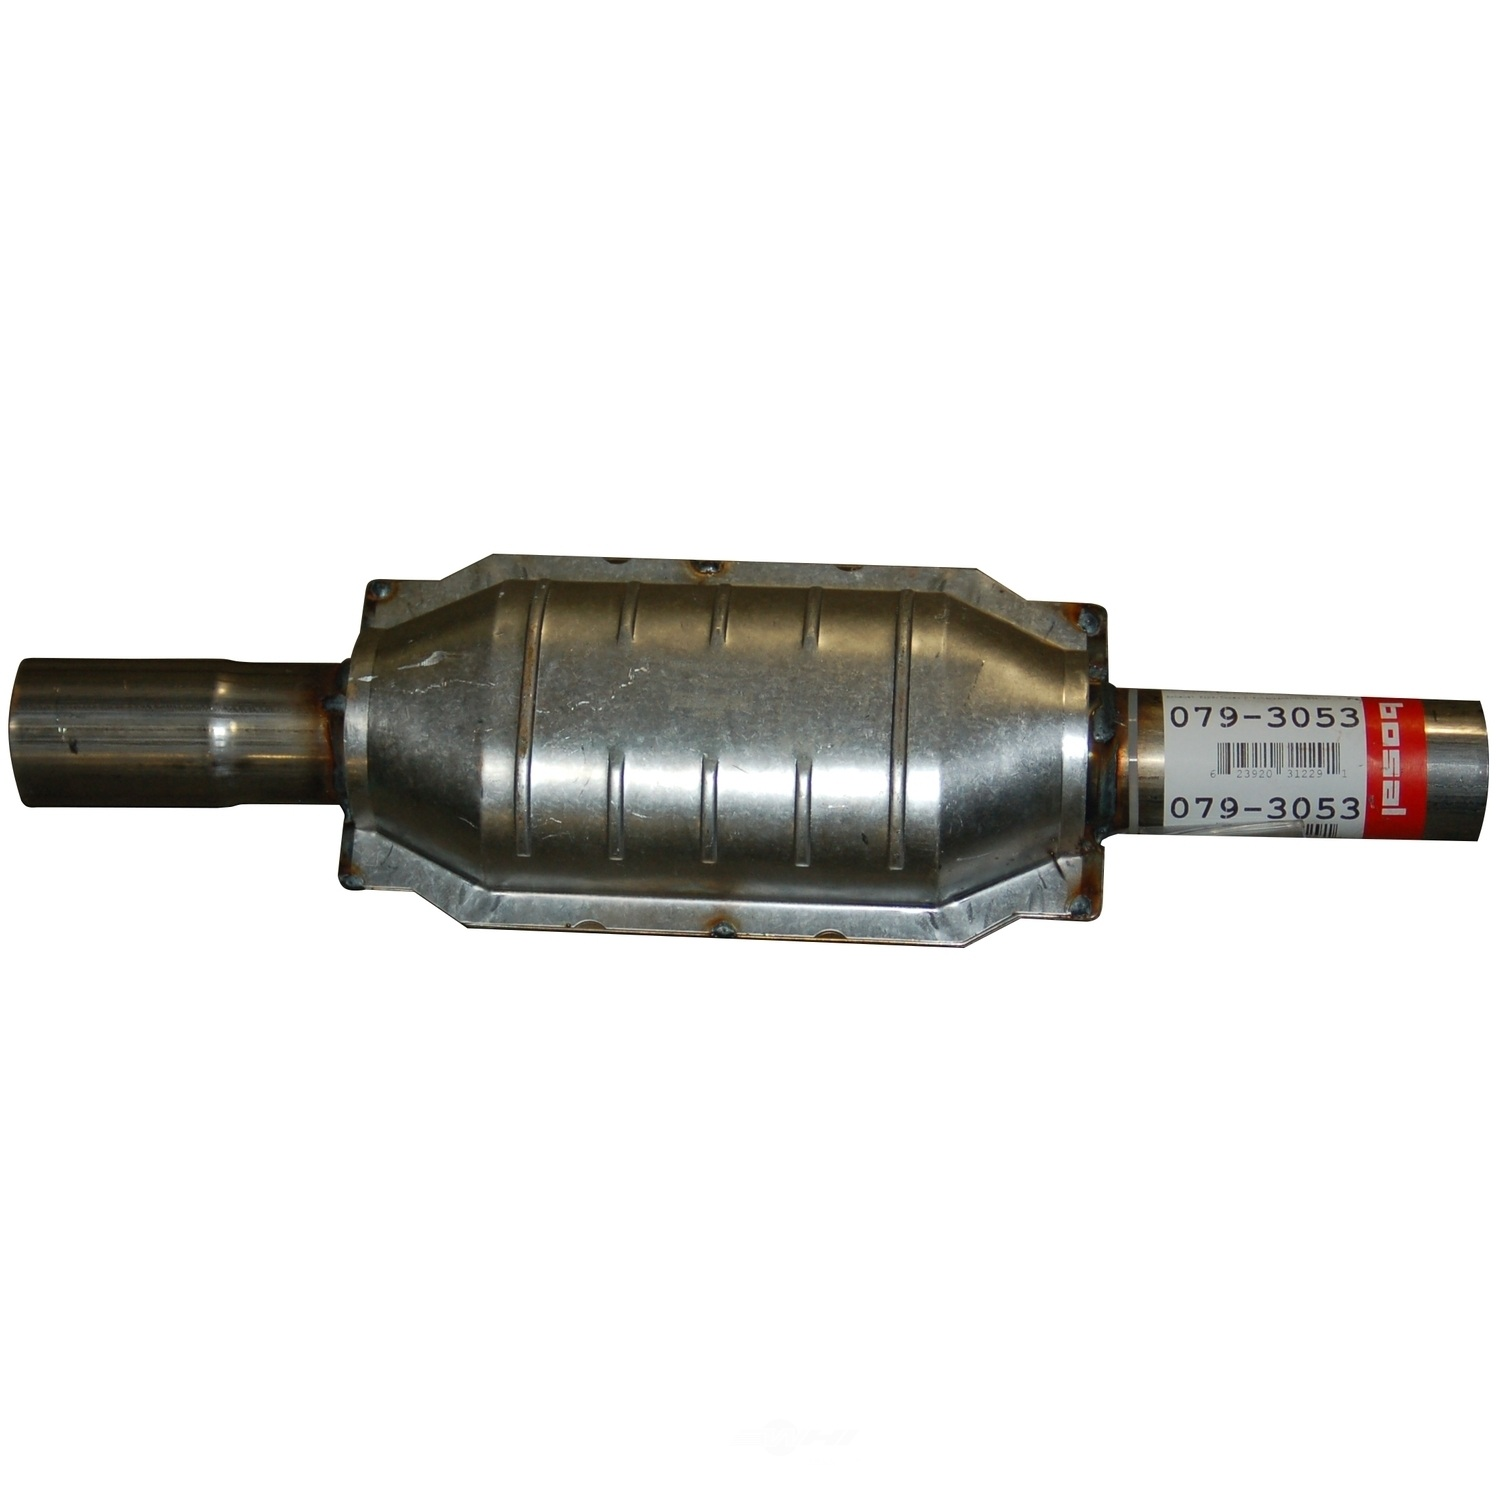 BOSAL 49 STATE CONVERTERS - BRExhaust Federal Direct-Fit Pre-OBDII Catalytic Converter - BSF 079-3053